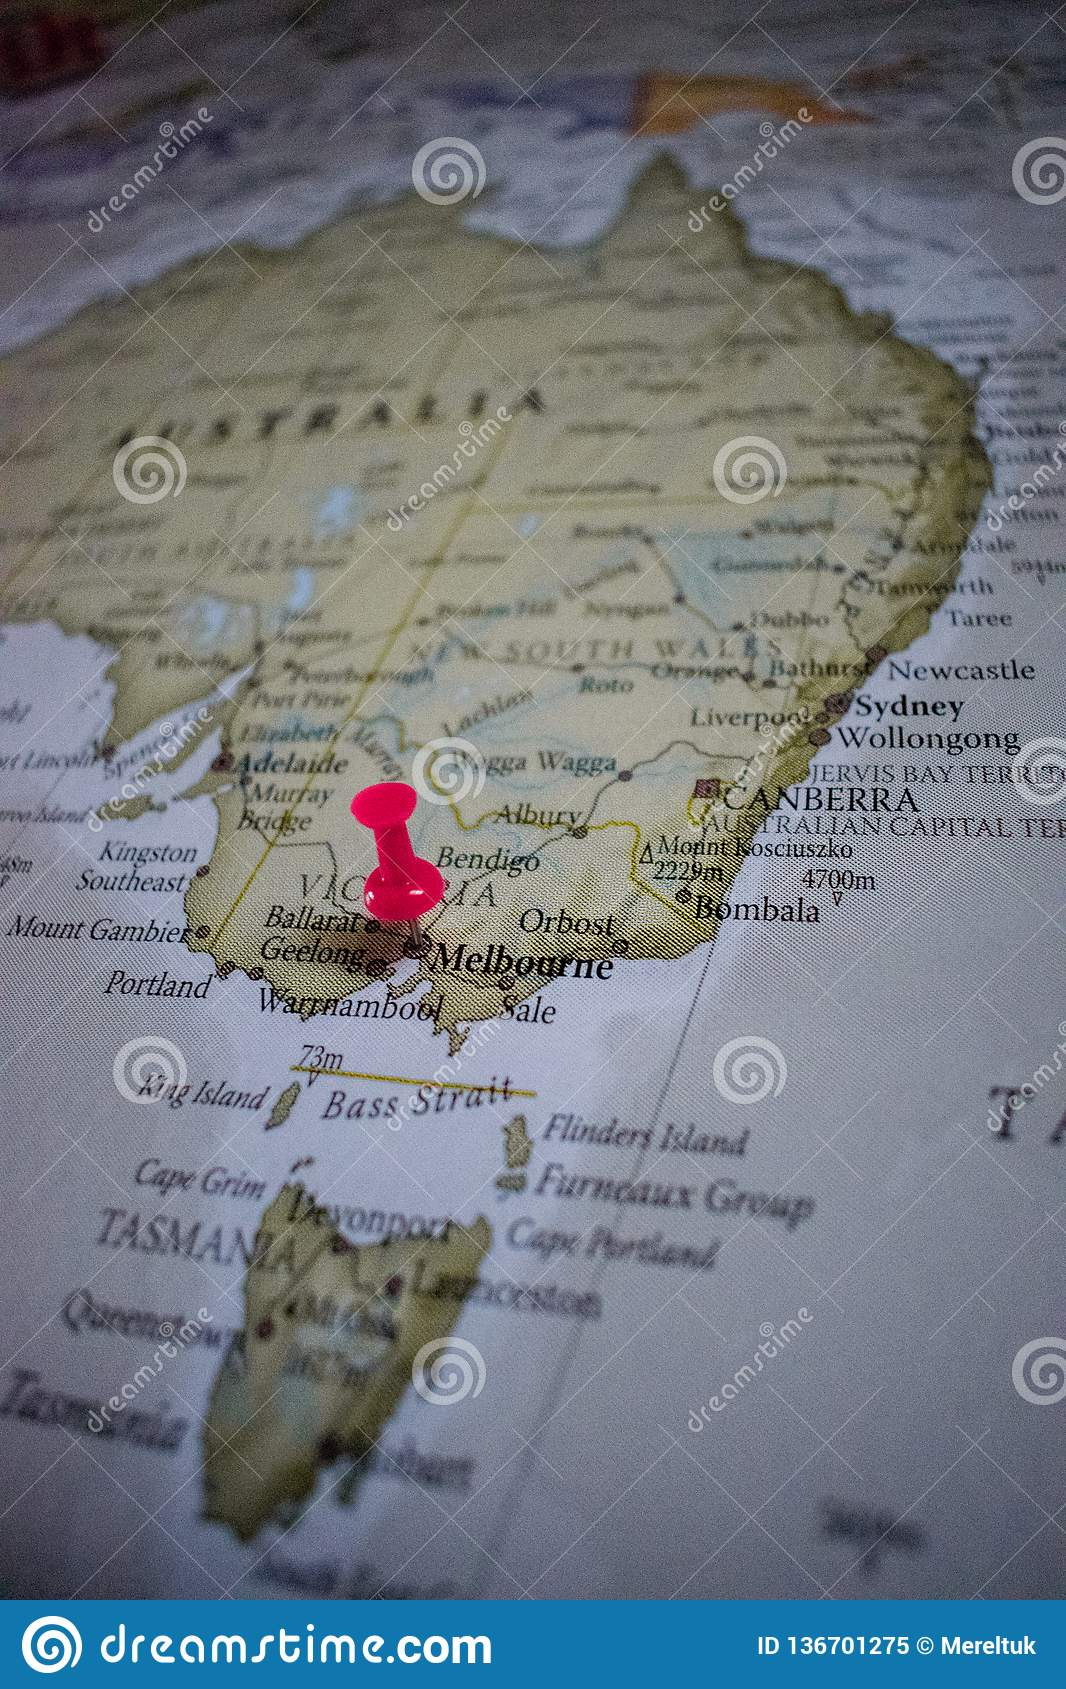 Melbourne Australia World Map.Close Up Of Melbourne Pin Pointed On The World Map With A Pink